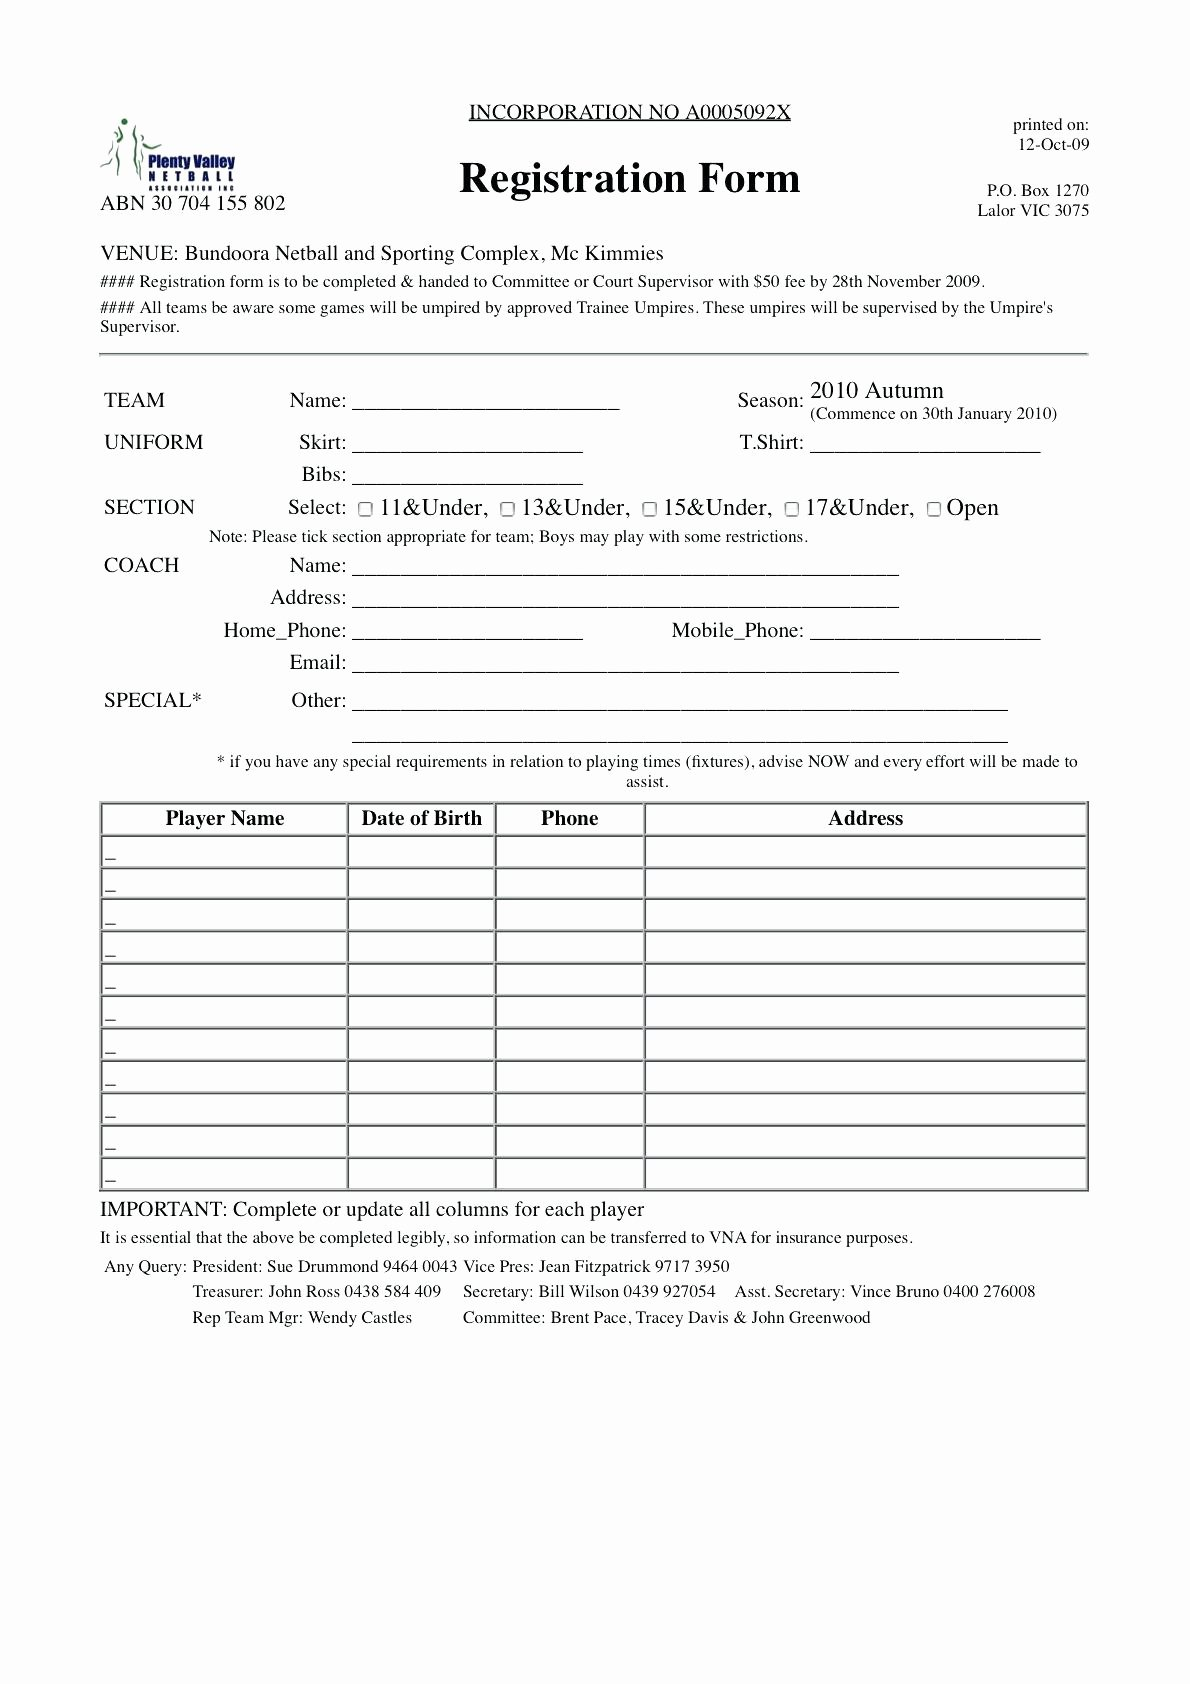 Template for Registration form Luxury Team Registration form Template